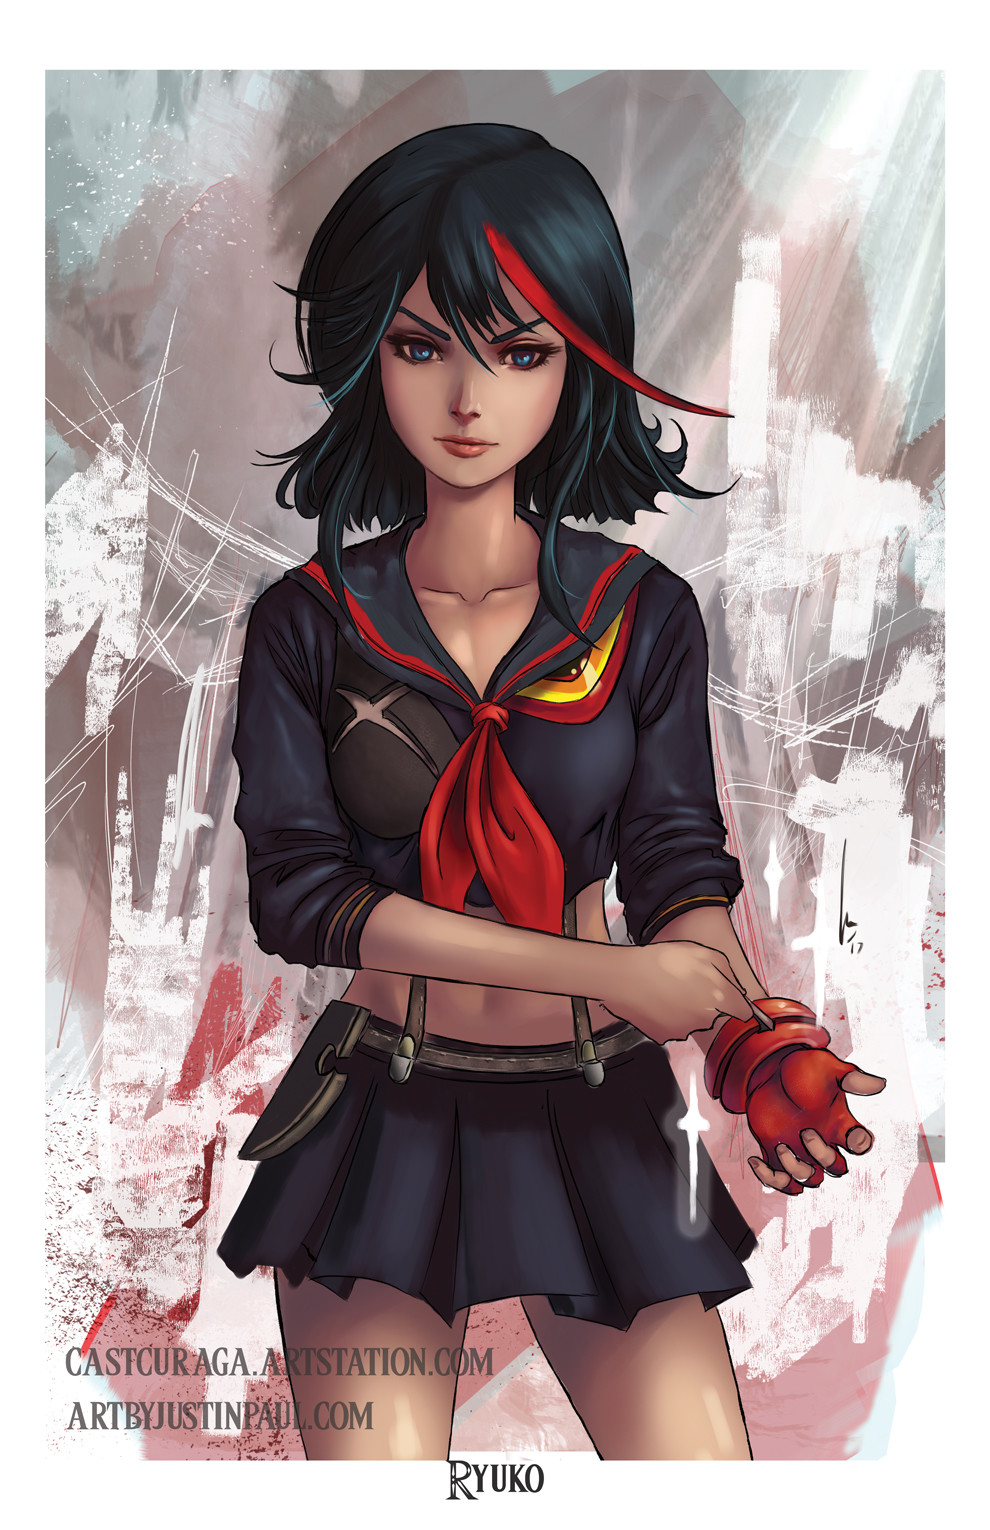 Justin paul ryuko reg by justin paul